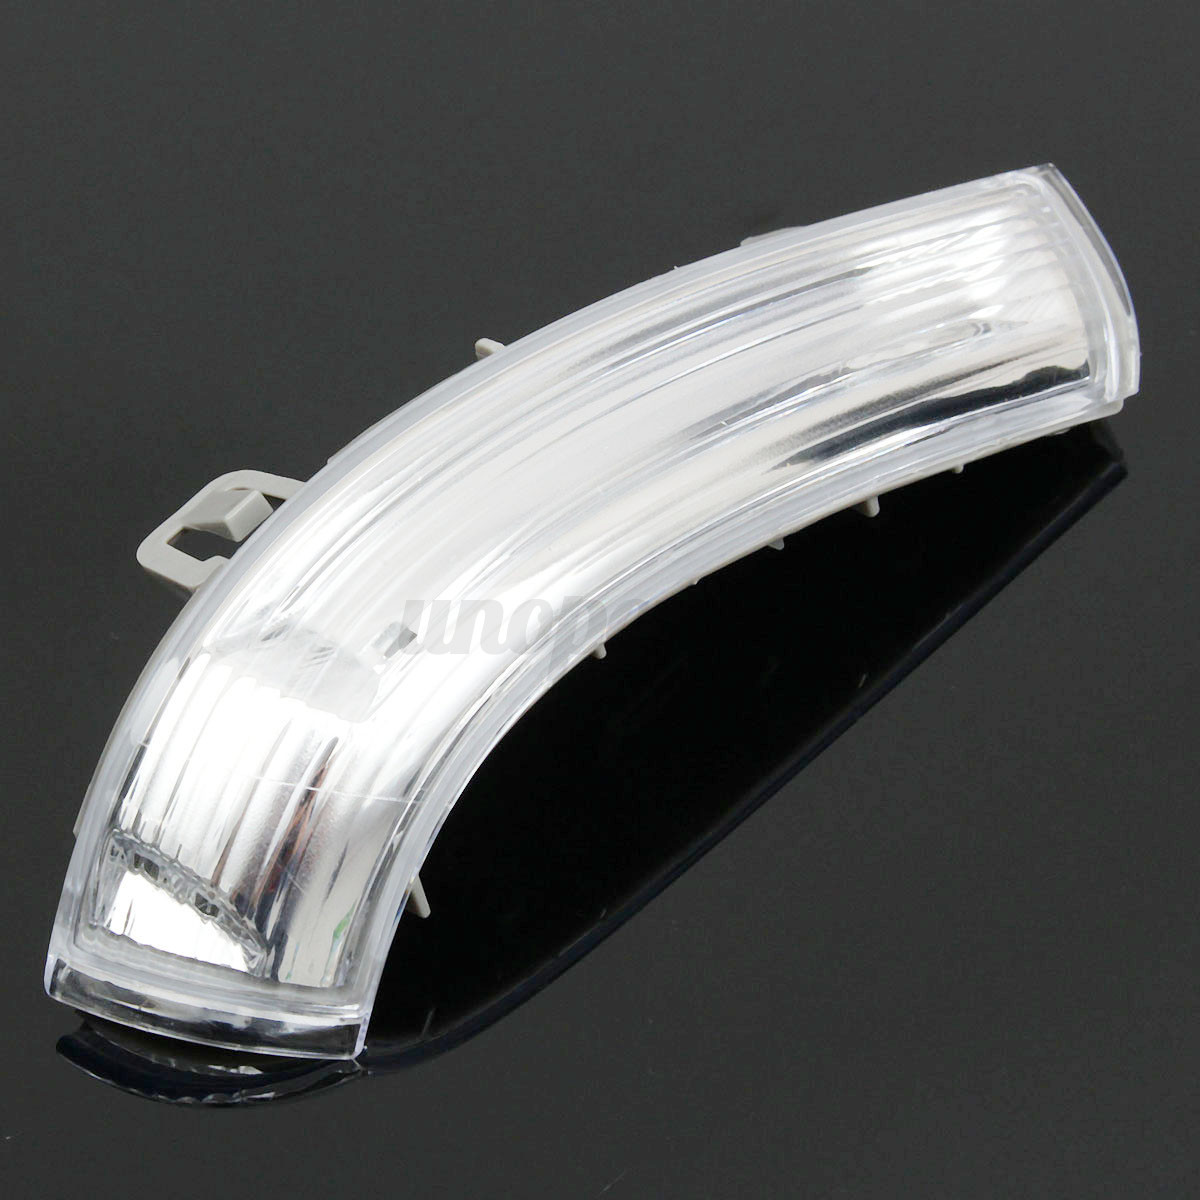 Gti Truck Light Led Autos Post